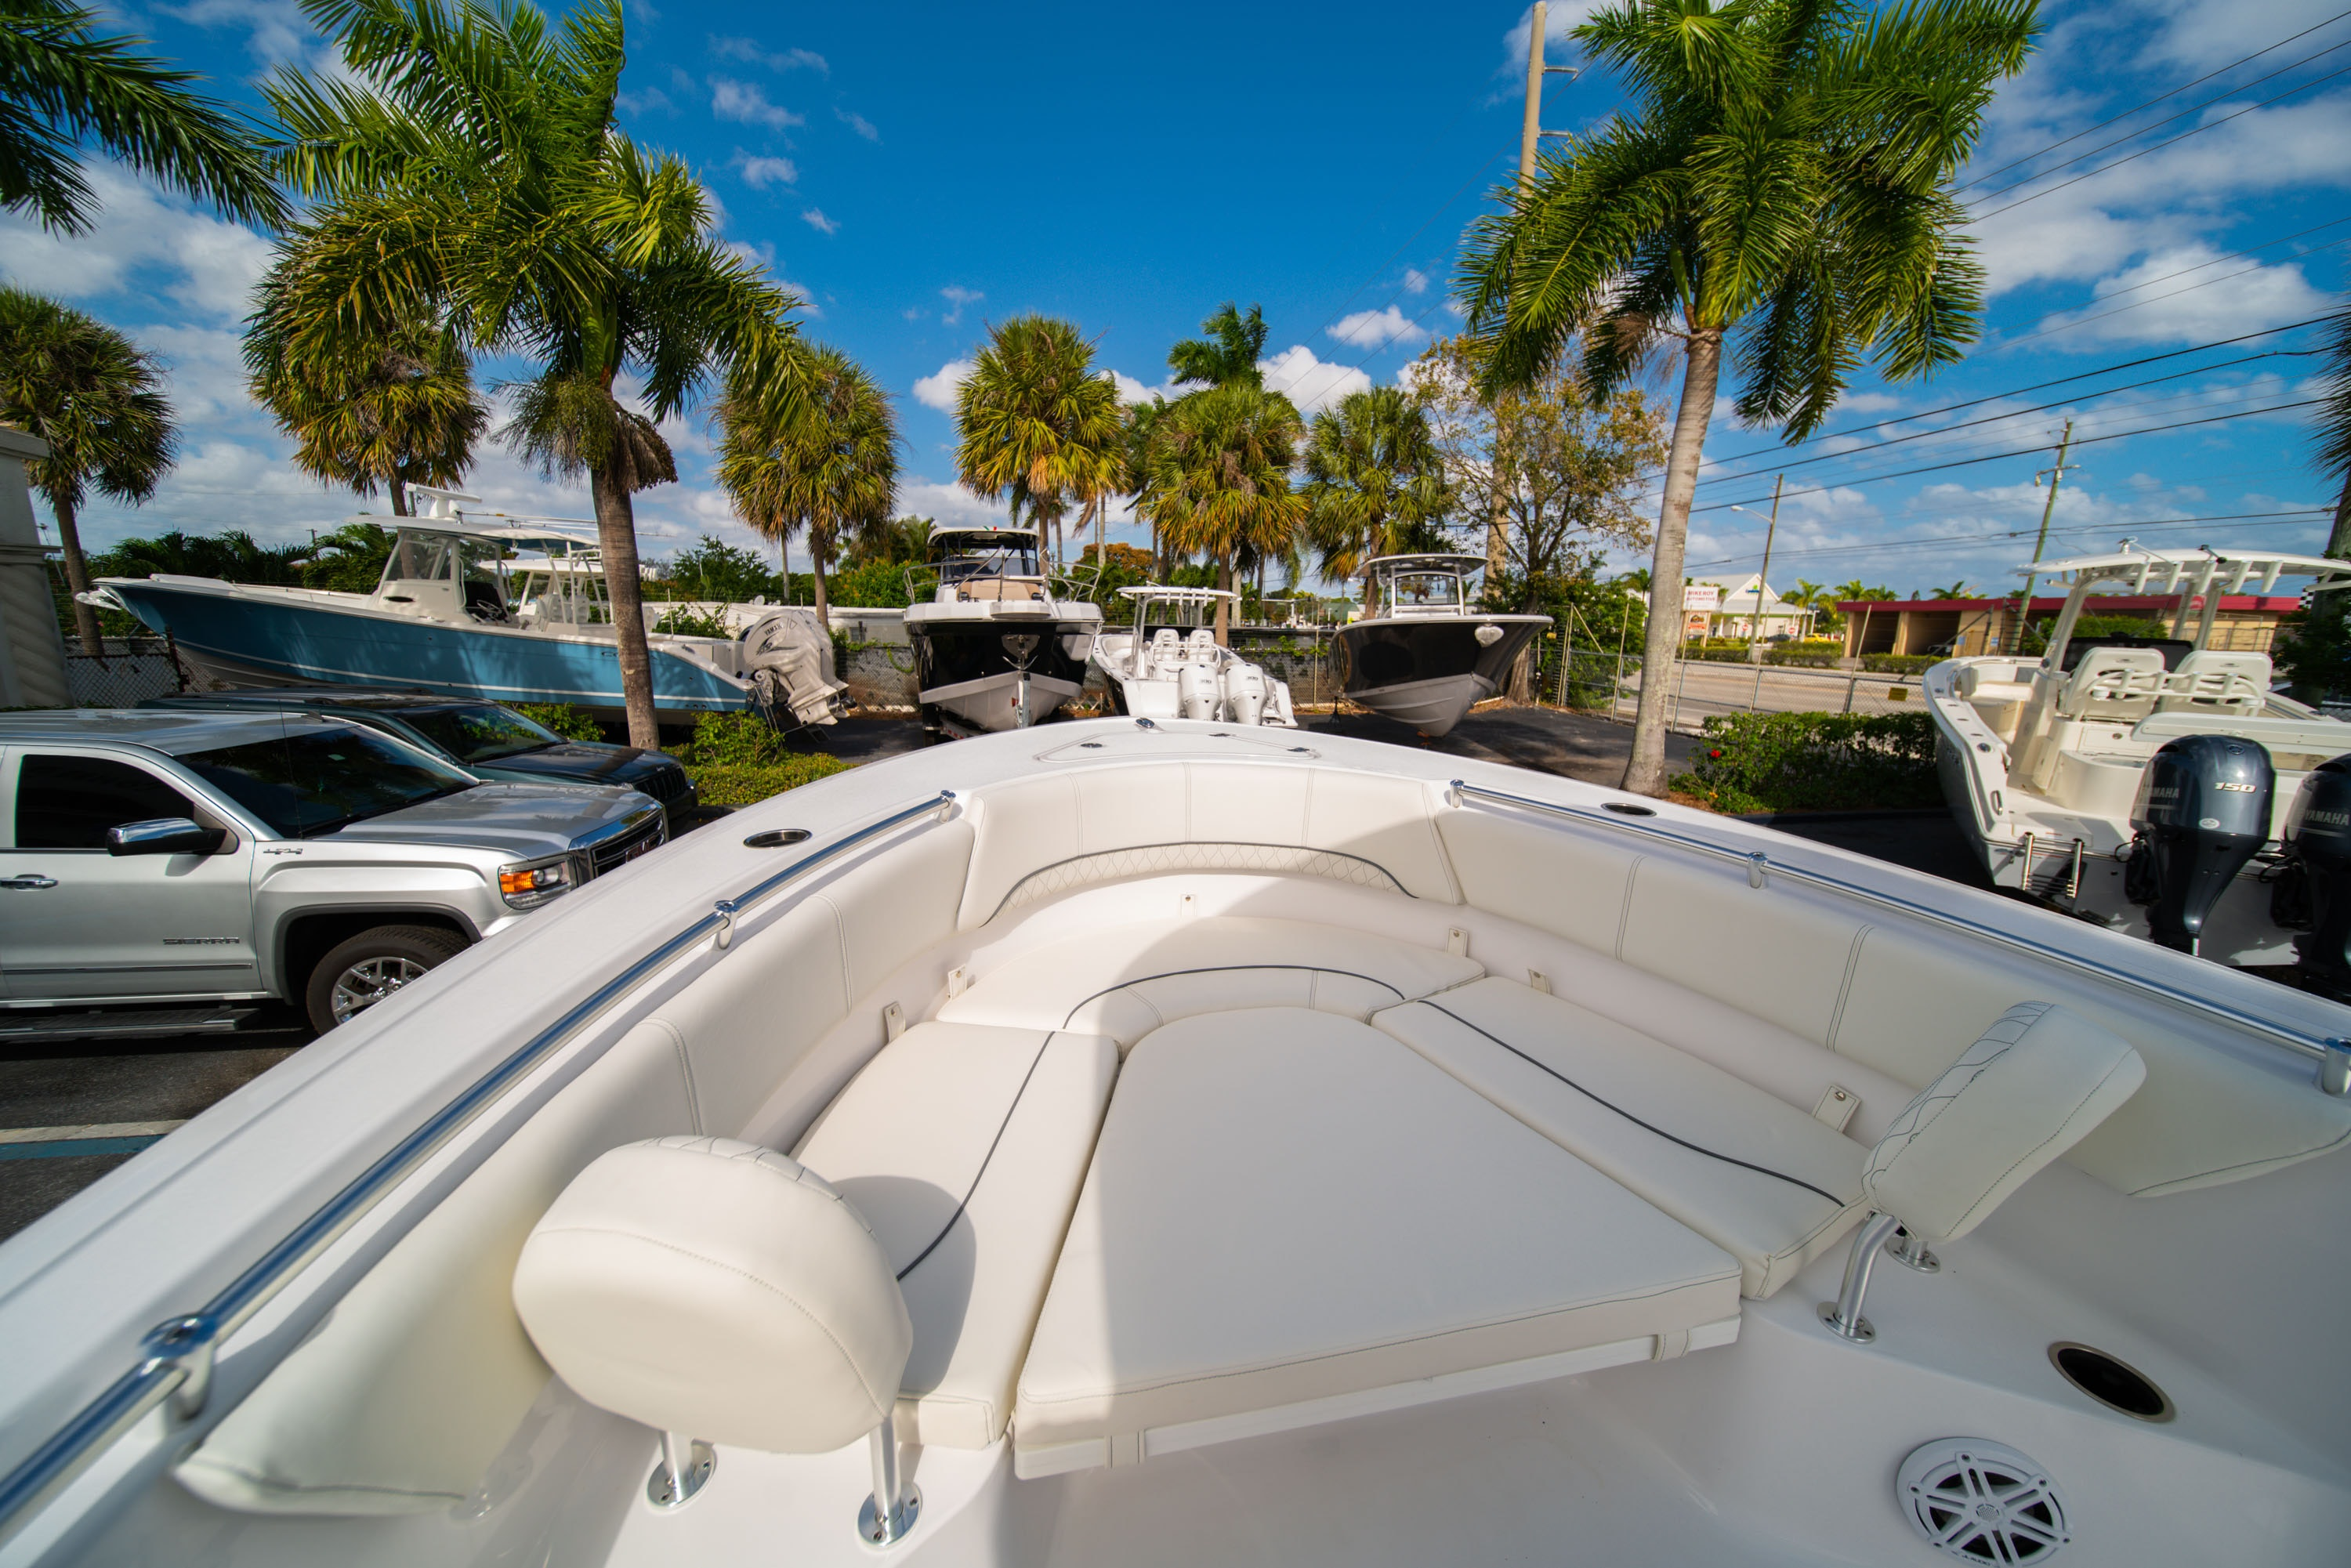 Thumbnail 34 for New 2020 Sportsman Heritage 231 Center Console boat for sale in West Palm Beach, FL